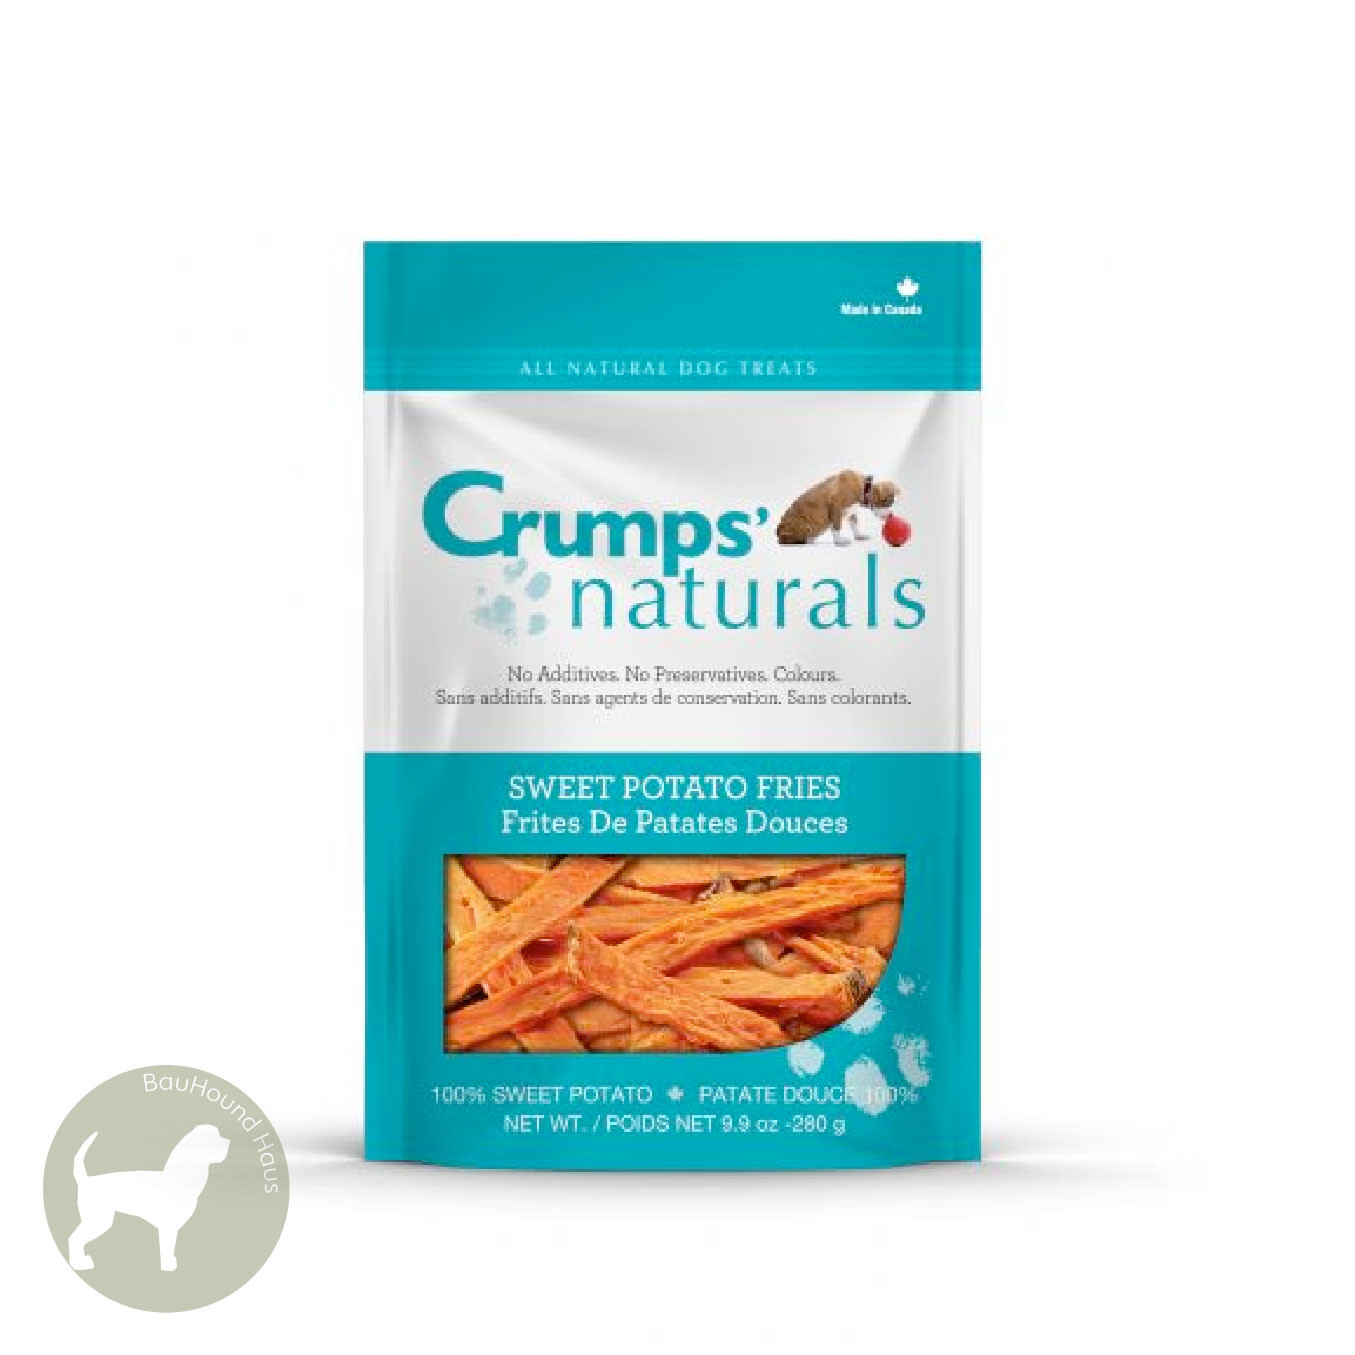 Crumps Crumps Natural Sweet Potato Fries, 135g